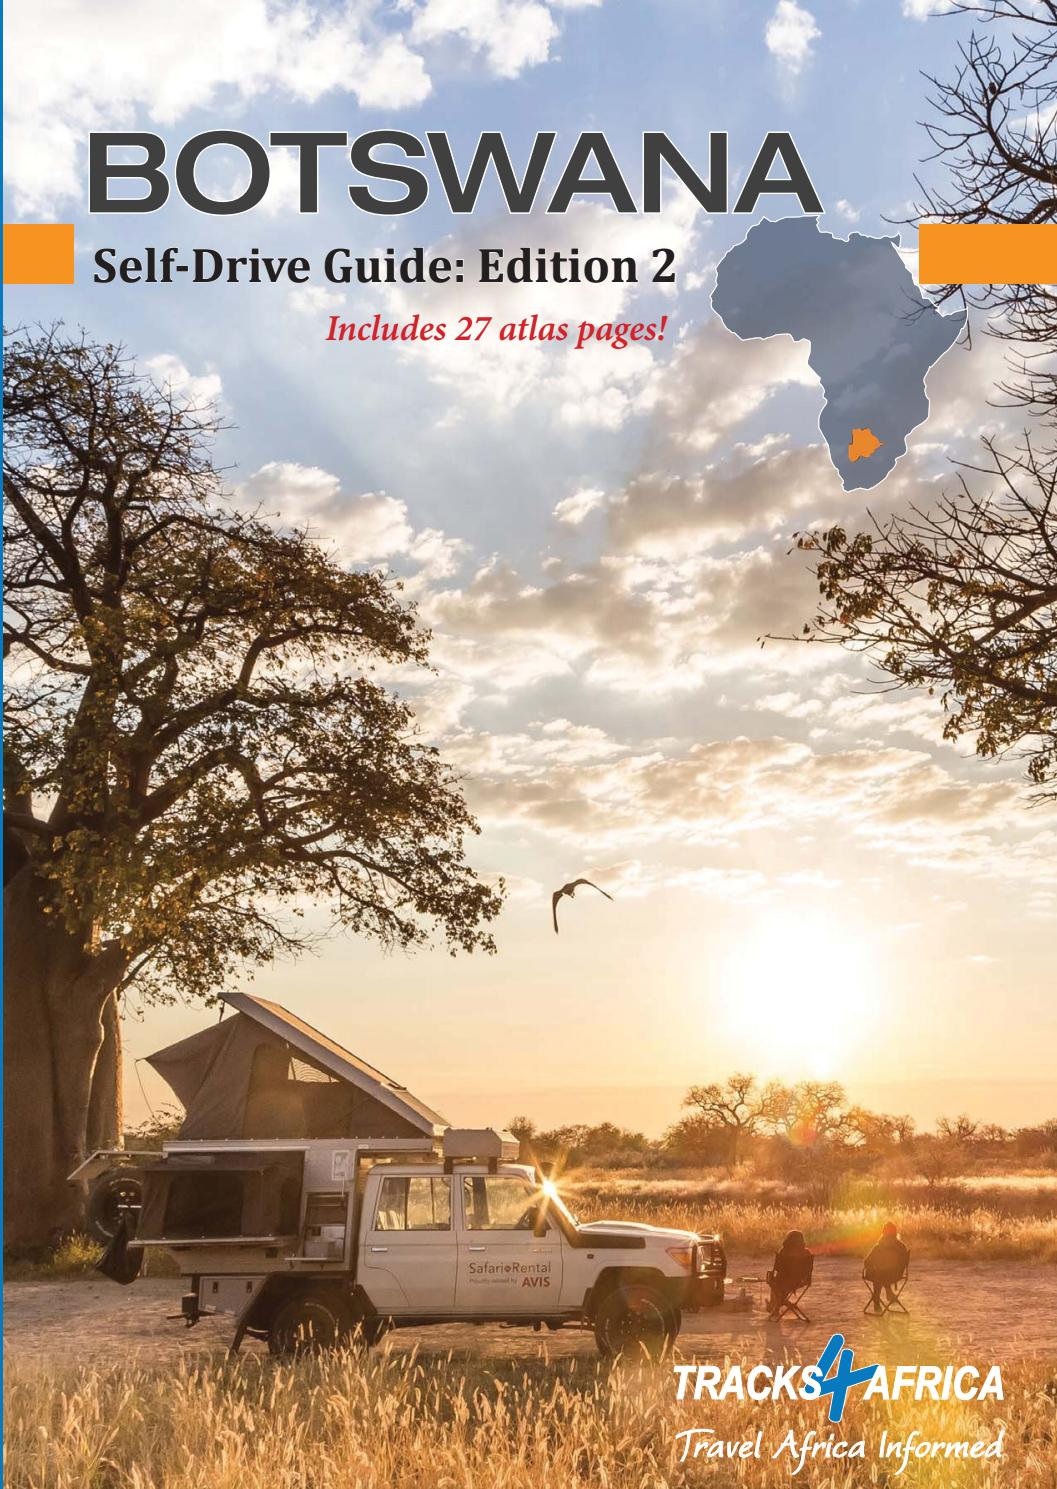 Tracks4Africa Botswana Self-drive Guide Book Edition 2